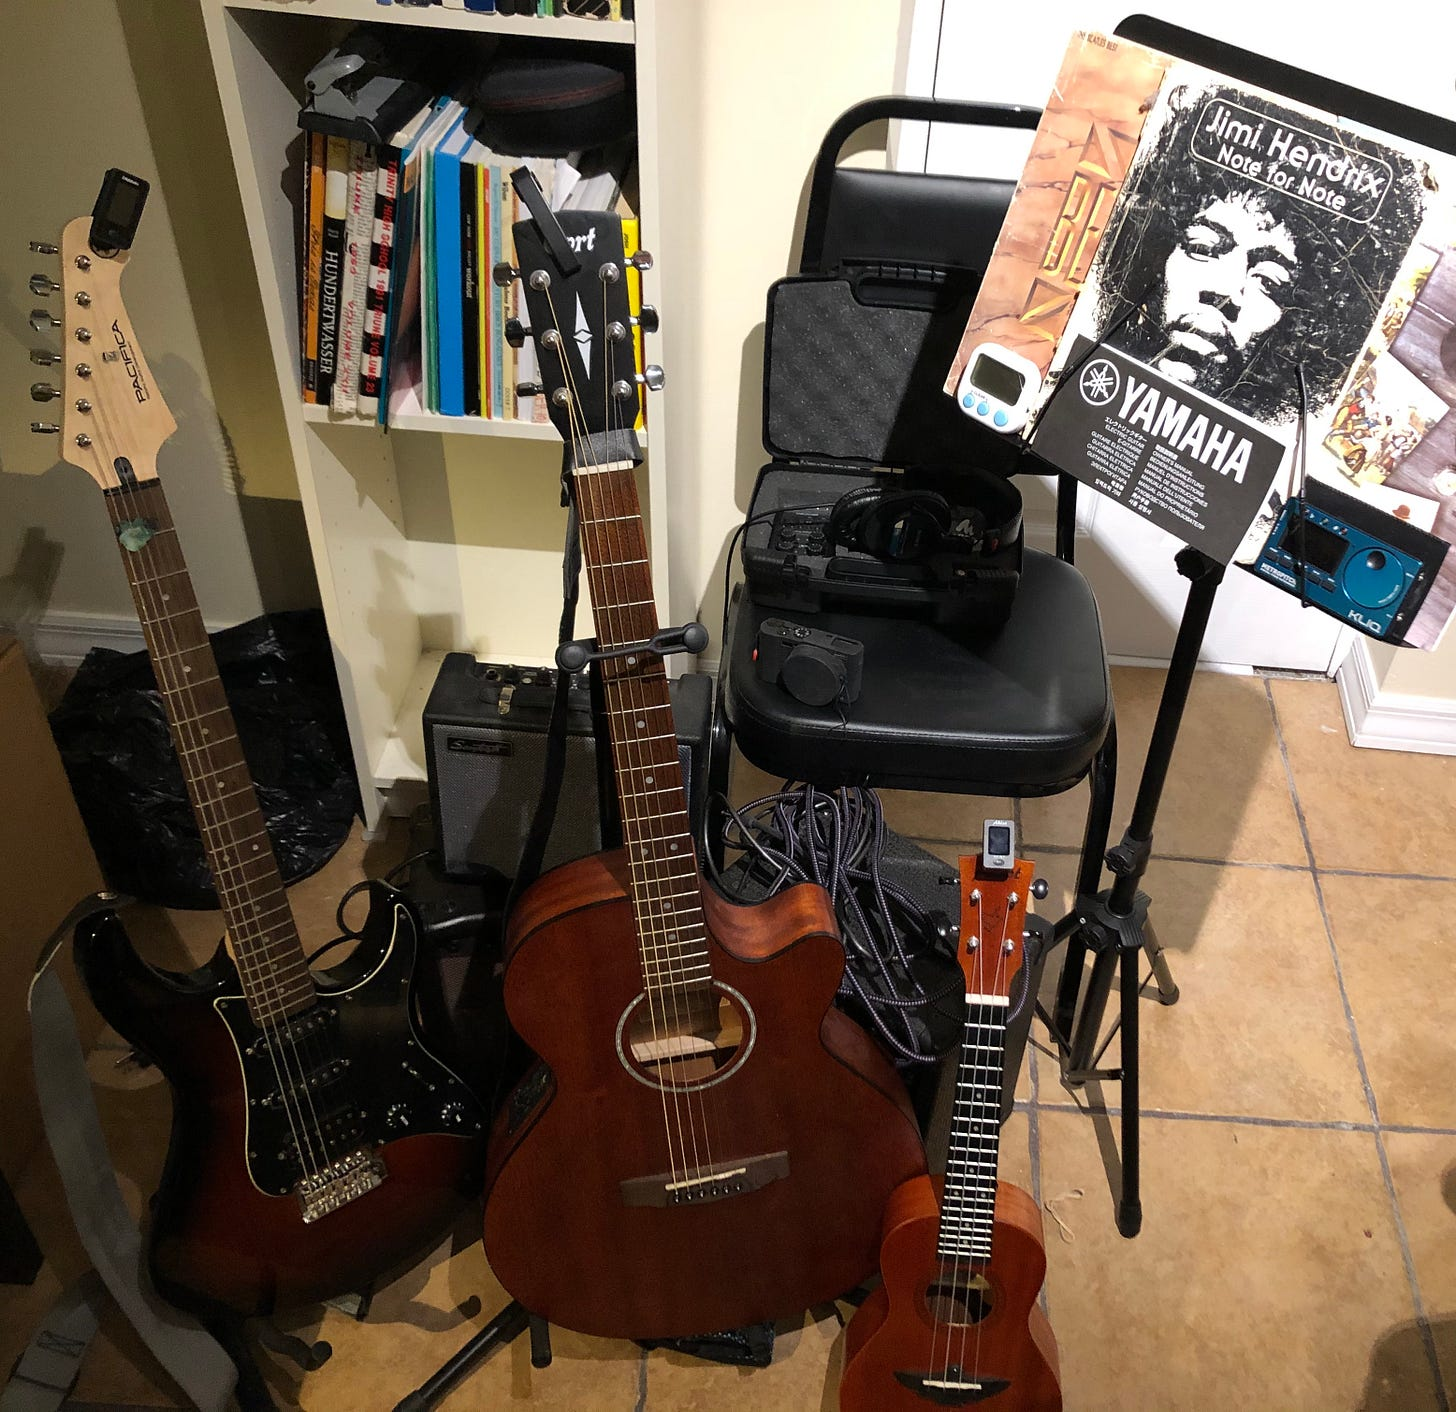 Electric guitar, acoustic guitar, ukulele, amplifier, camera, chair, music stand, and metronome. Recording device and headphones.